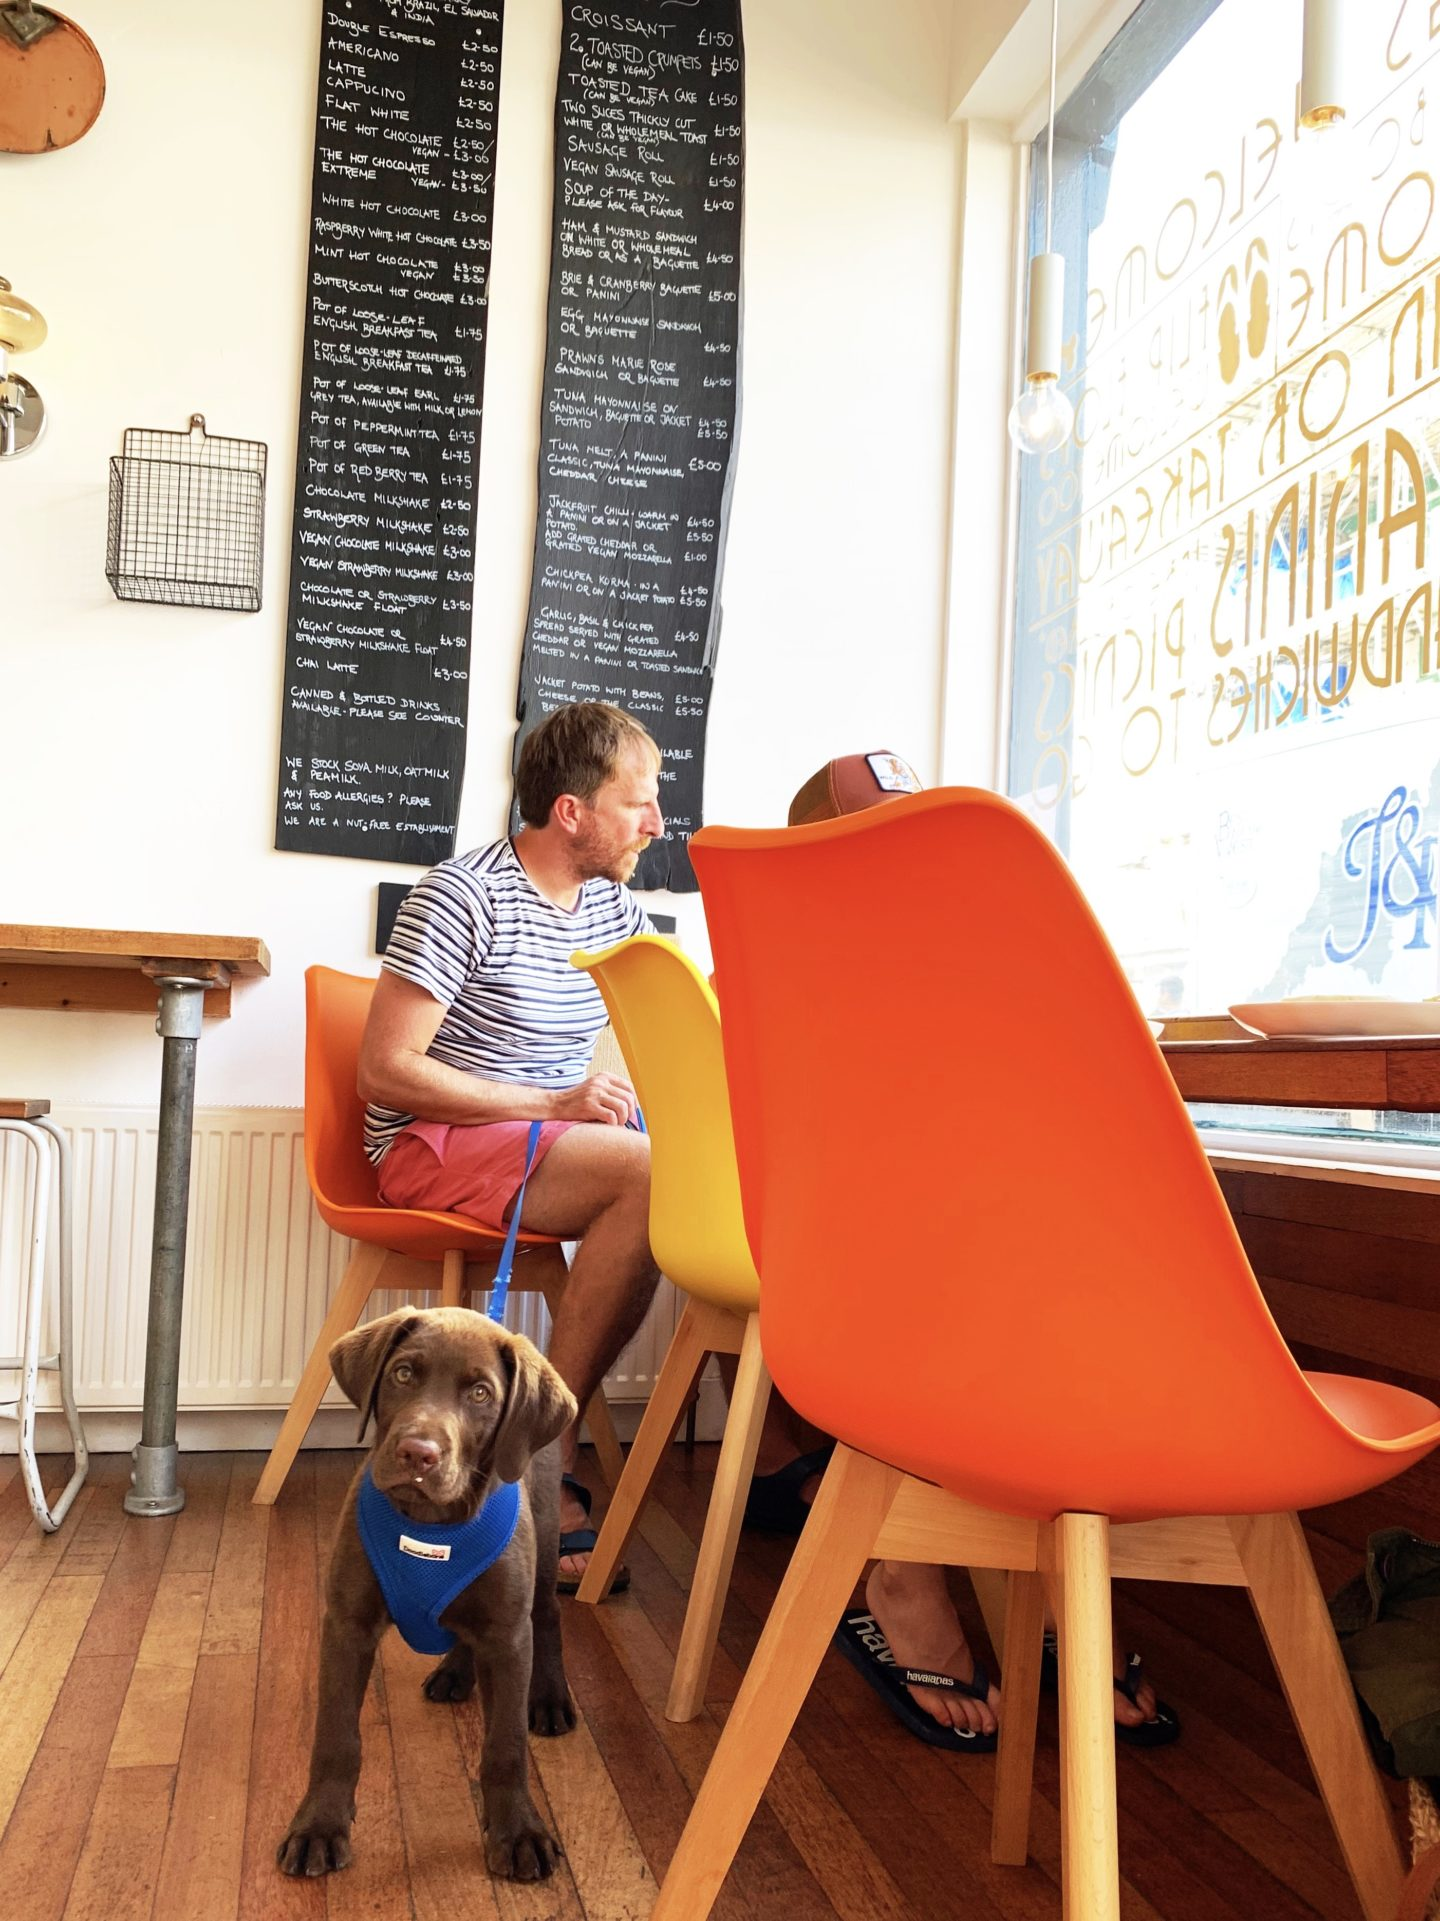 15 dog friendly places to eat and drink in North Devon